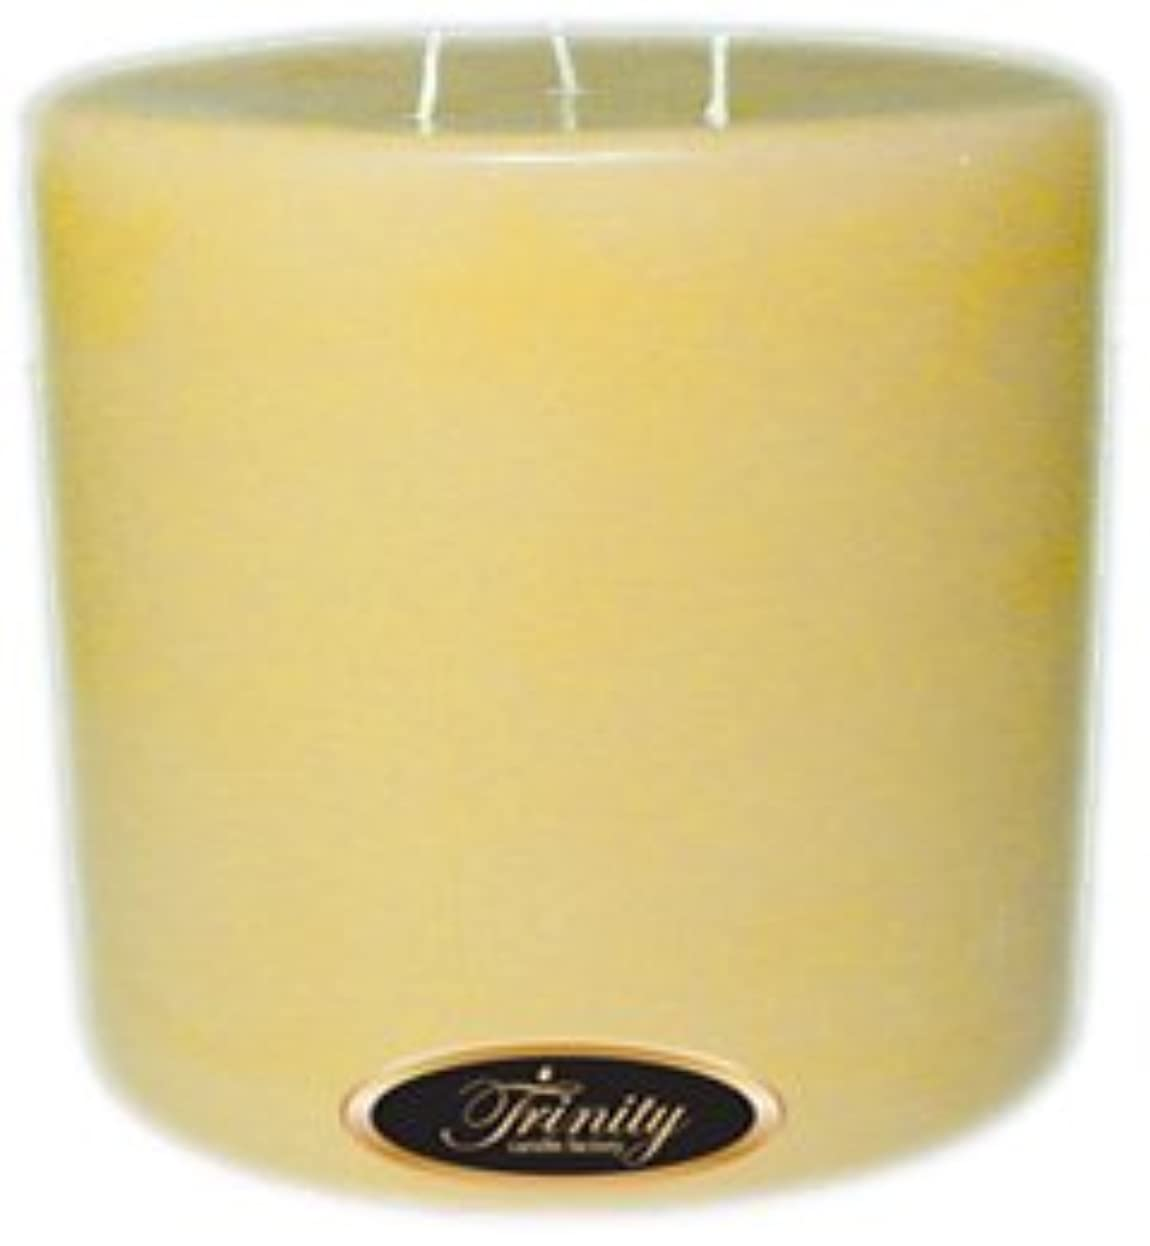 夢中プログレッシブ勇者Trinity Candle工場 – Almond Bark – Pillar Candle – 6 x 6